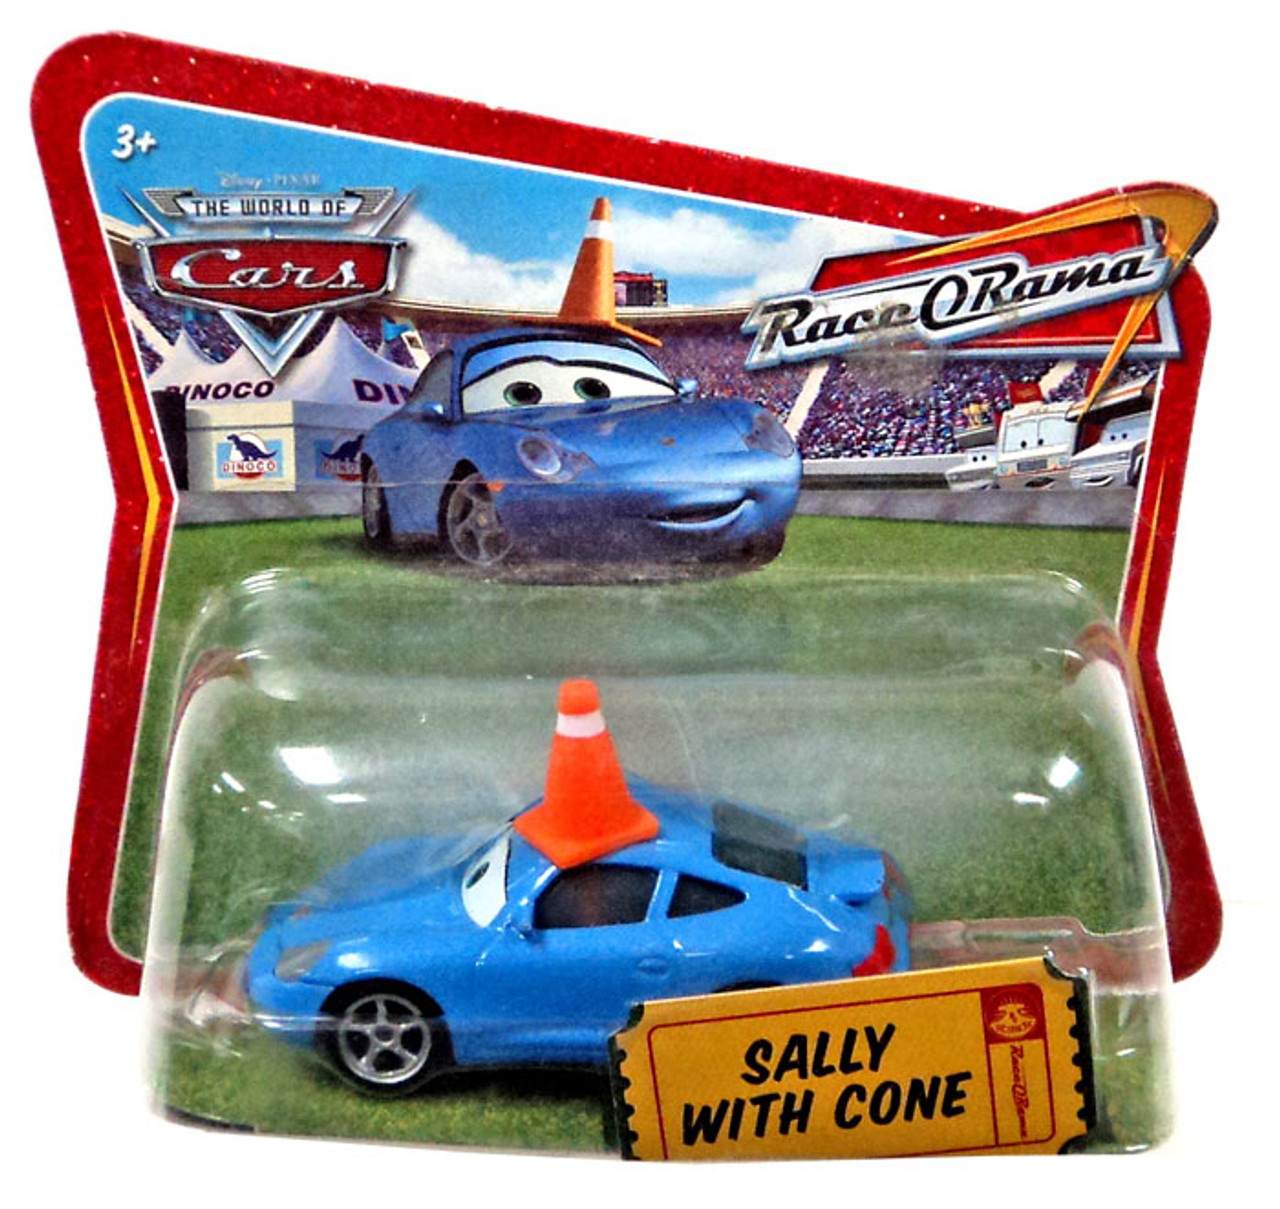 Disney Cars The World Of Cars Race O Rama Sally With Cone